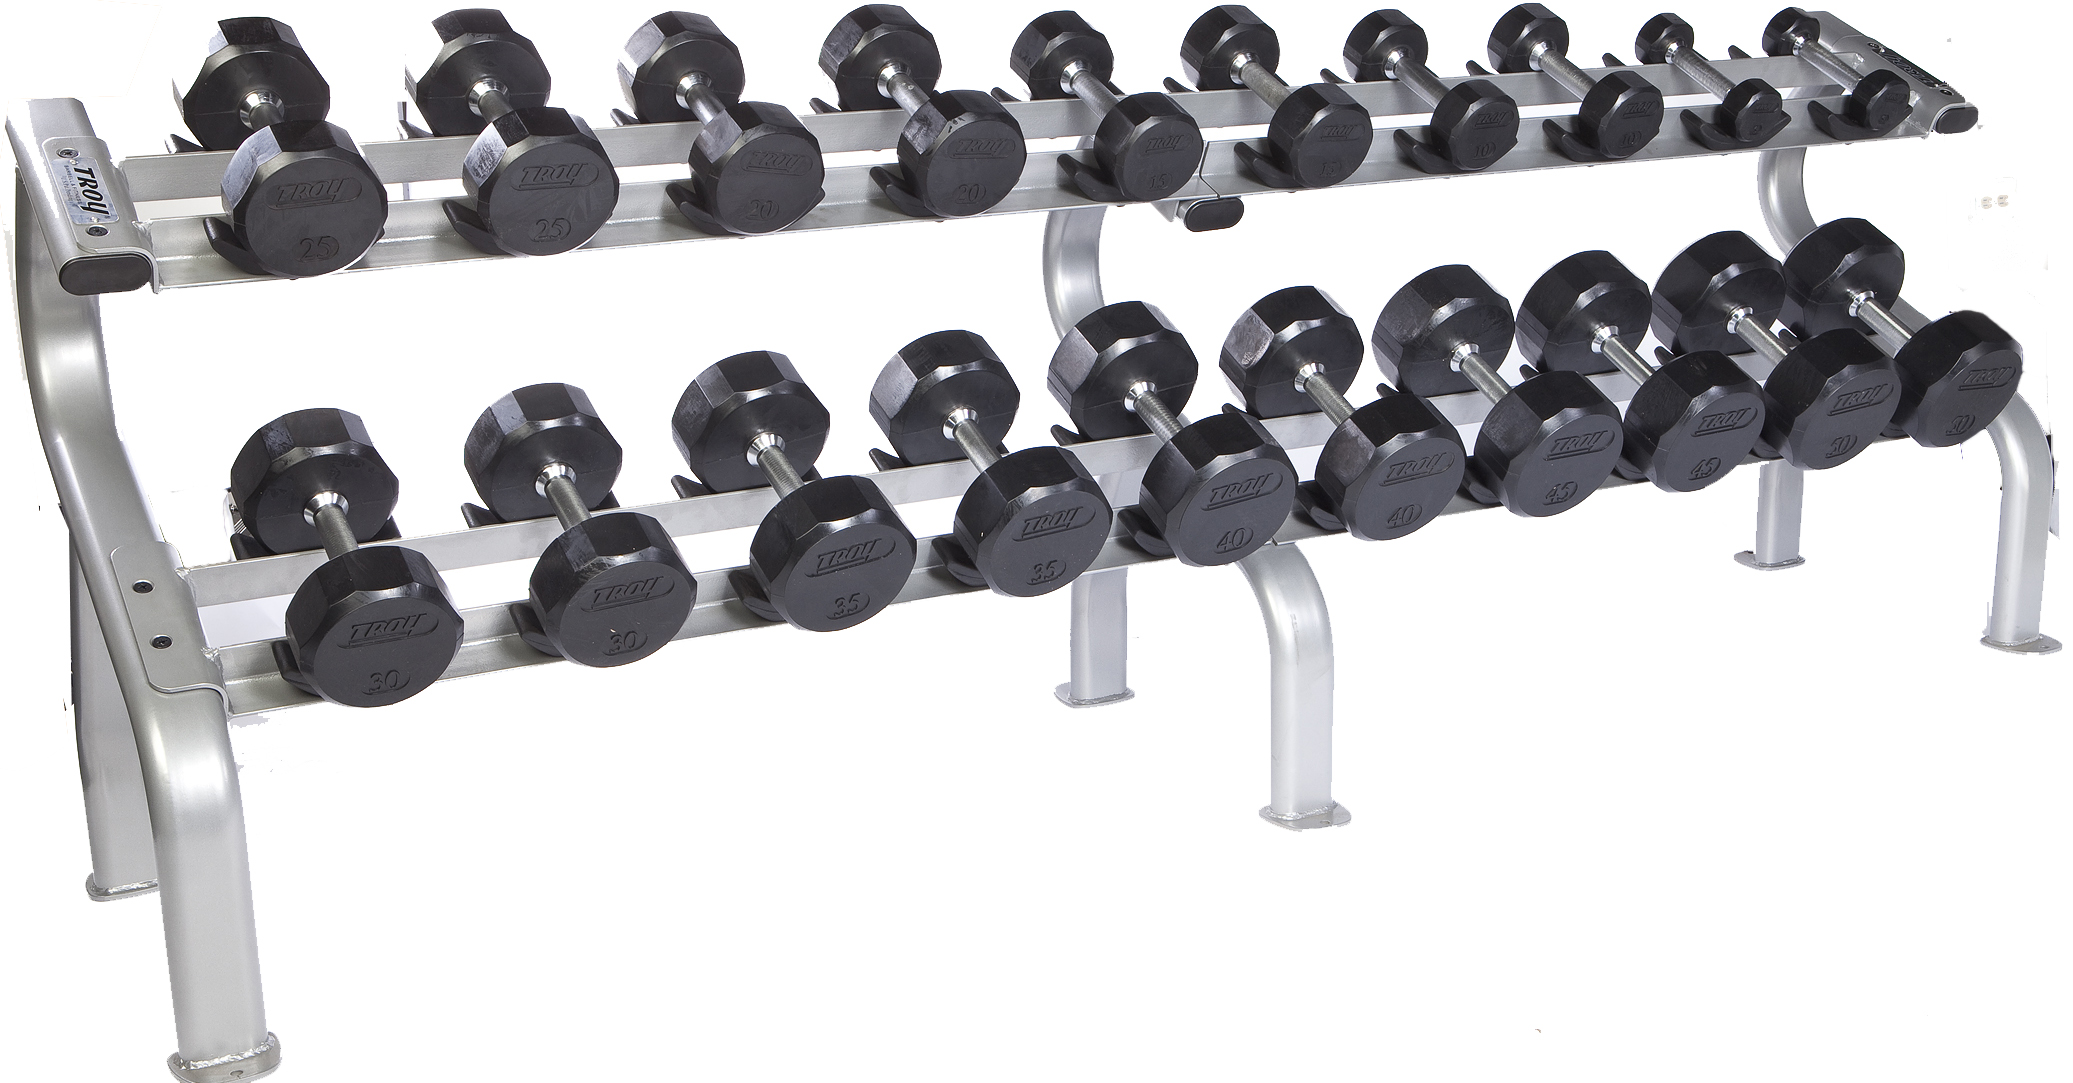 troy 5 50 lbs 10 pairs rubber dumbbell weight set w rack flat 12 sided head commercial gym quality by troy barbell walmart com